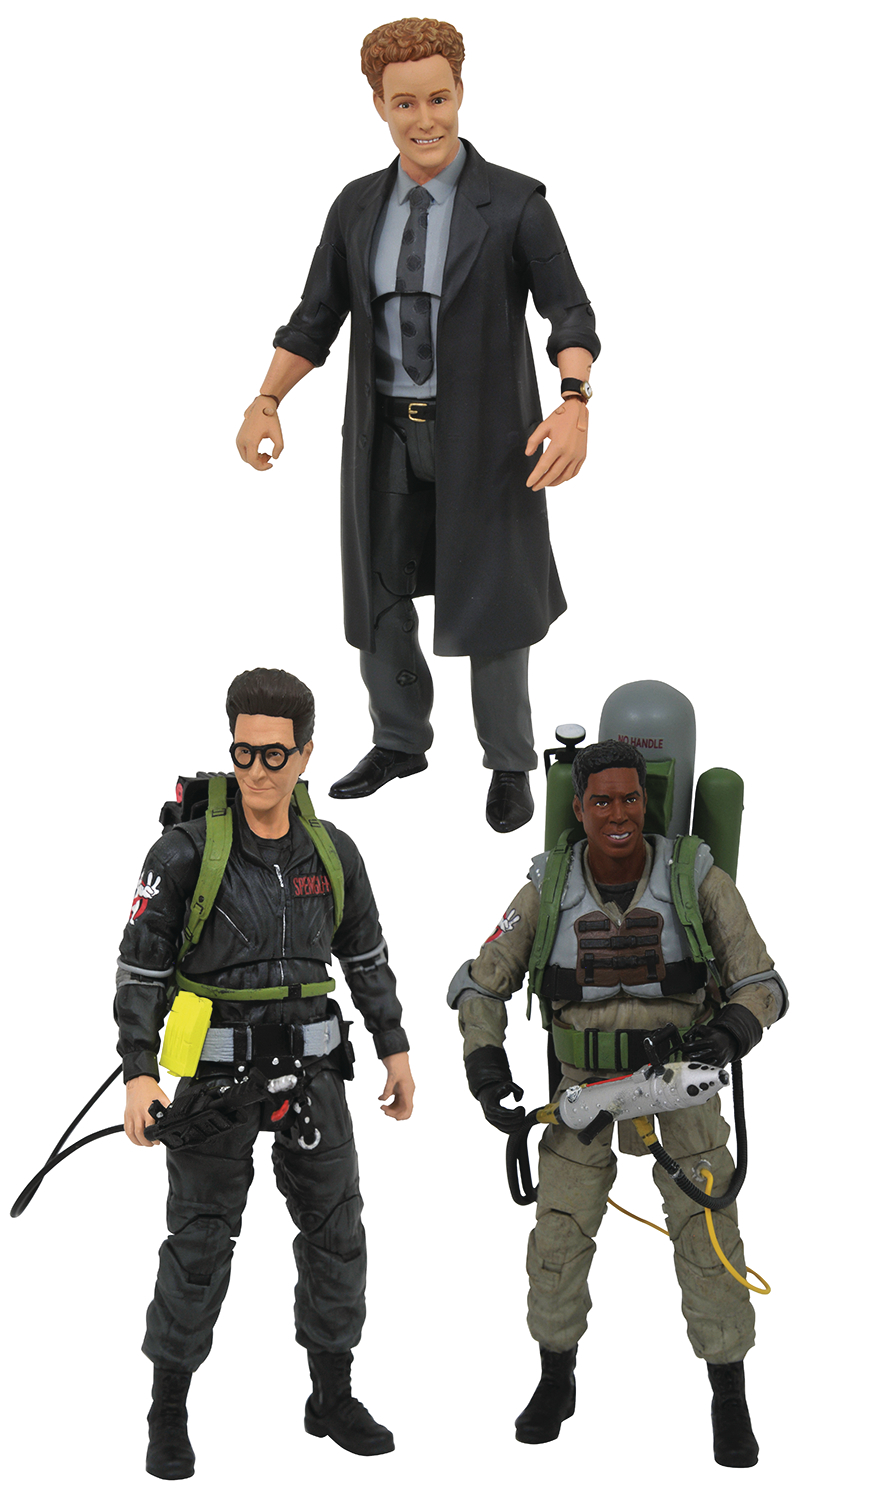 Diamond Select Toys Shipping This Week – Ghostbusters 2 Select Series 7